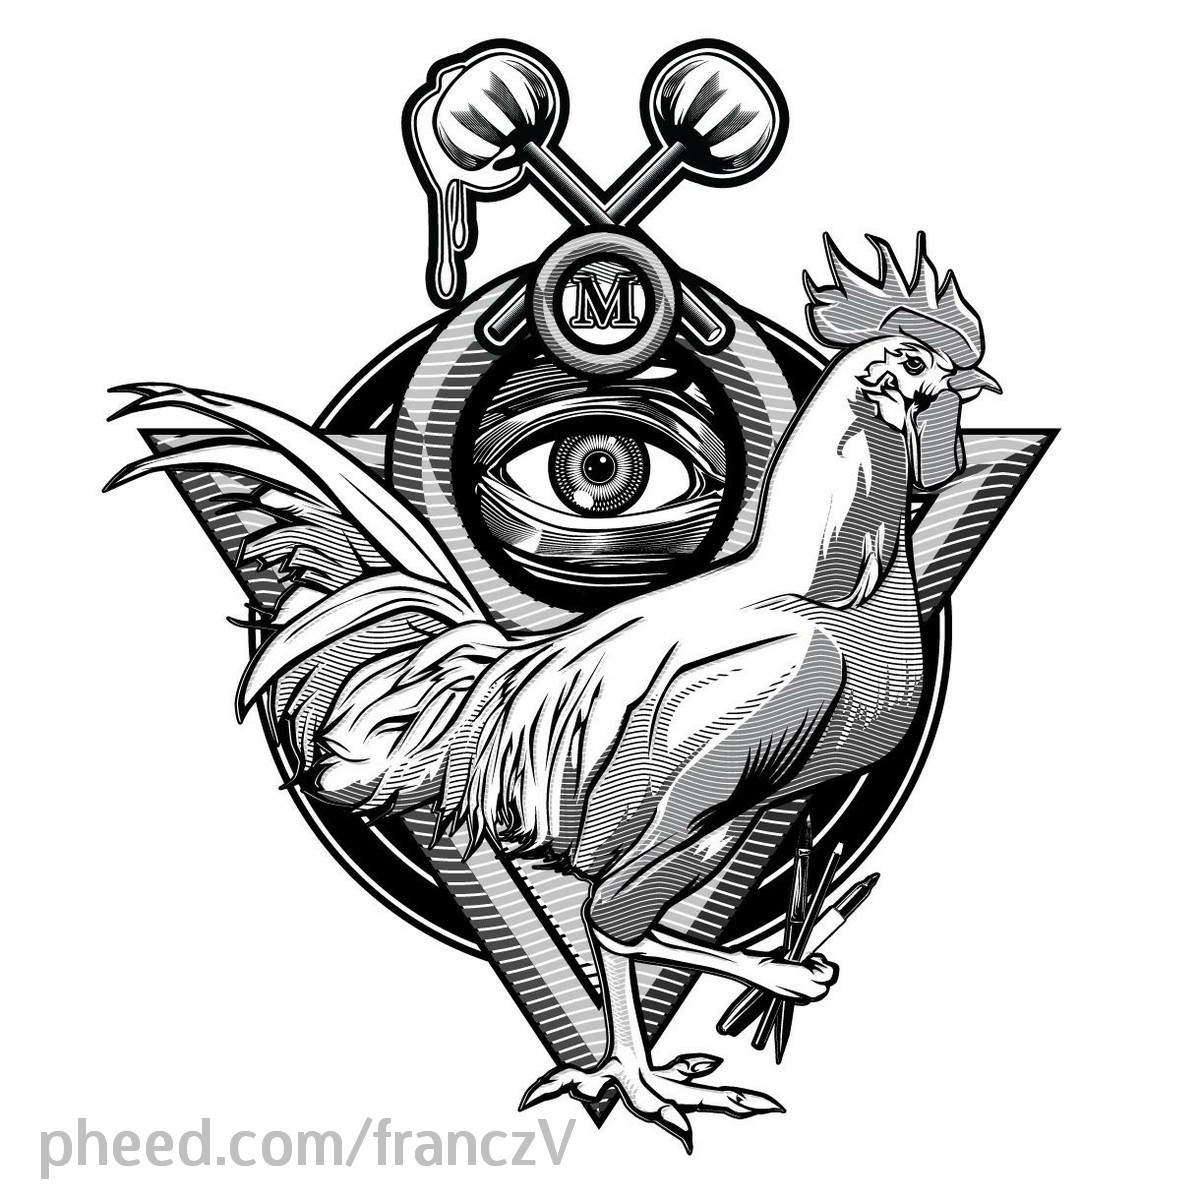 Fighting Rooster Tattoo Designs And rooster tattoo designFighting Rooster Design